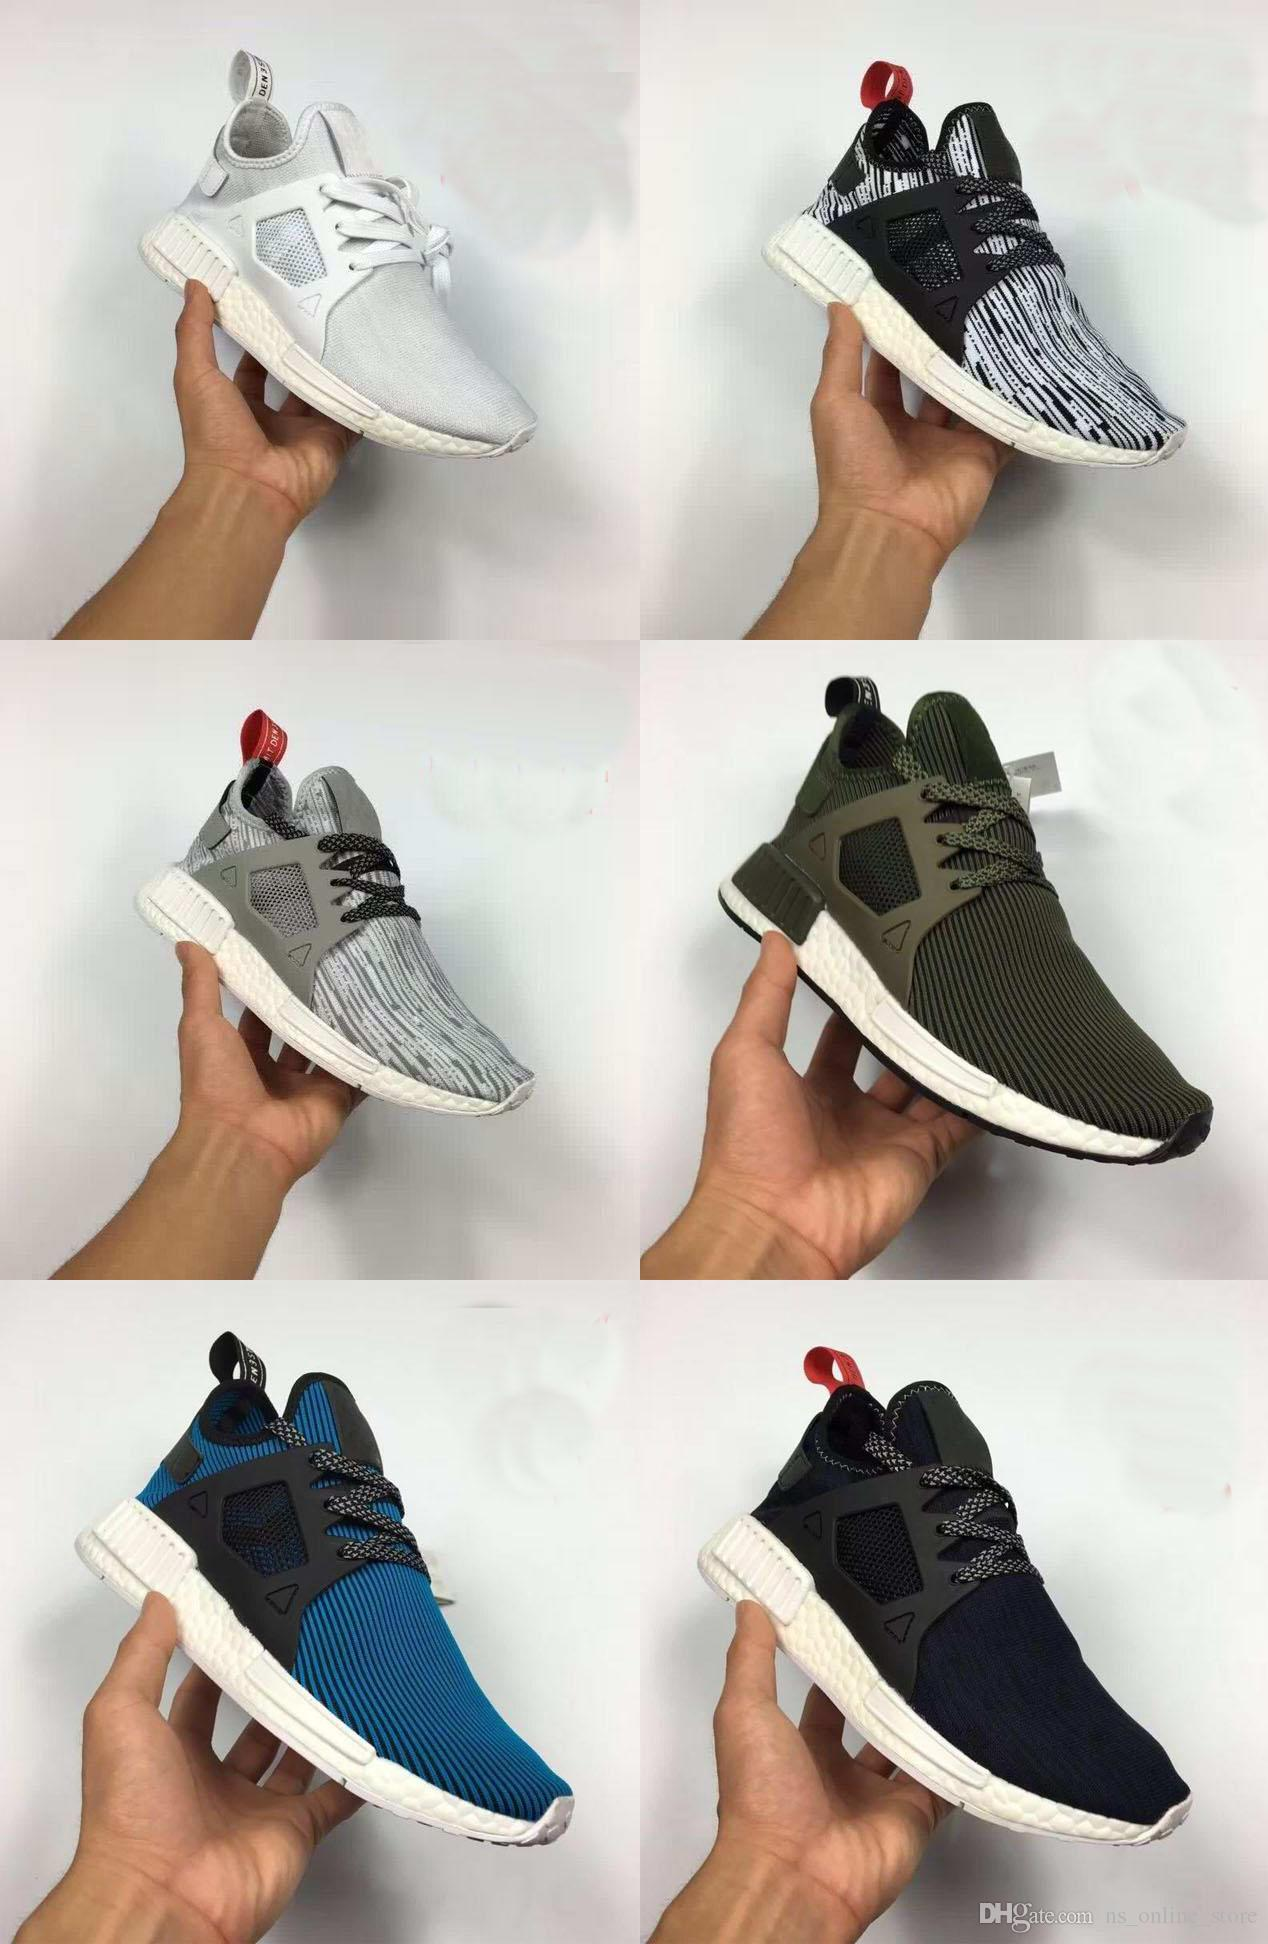 ad514ba00307b NMD XR1 Basf Boots Glitch Black White Blue Camo Pack Ultra Boost For  Men Women Running Sports Shoes Outdoor Jogging Sneakers Size 36 45 Womans  Running Shoes ...